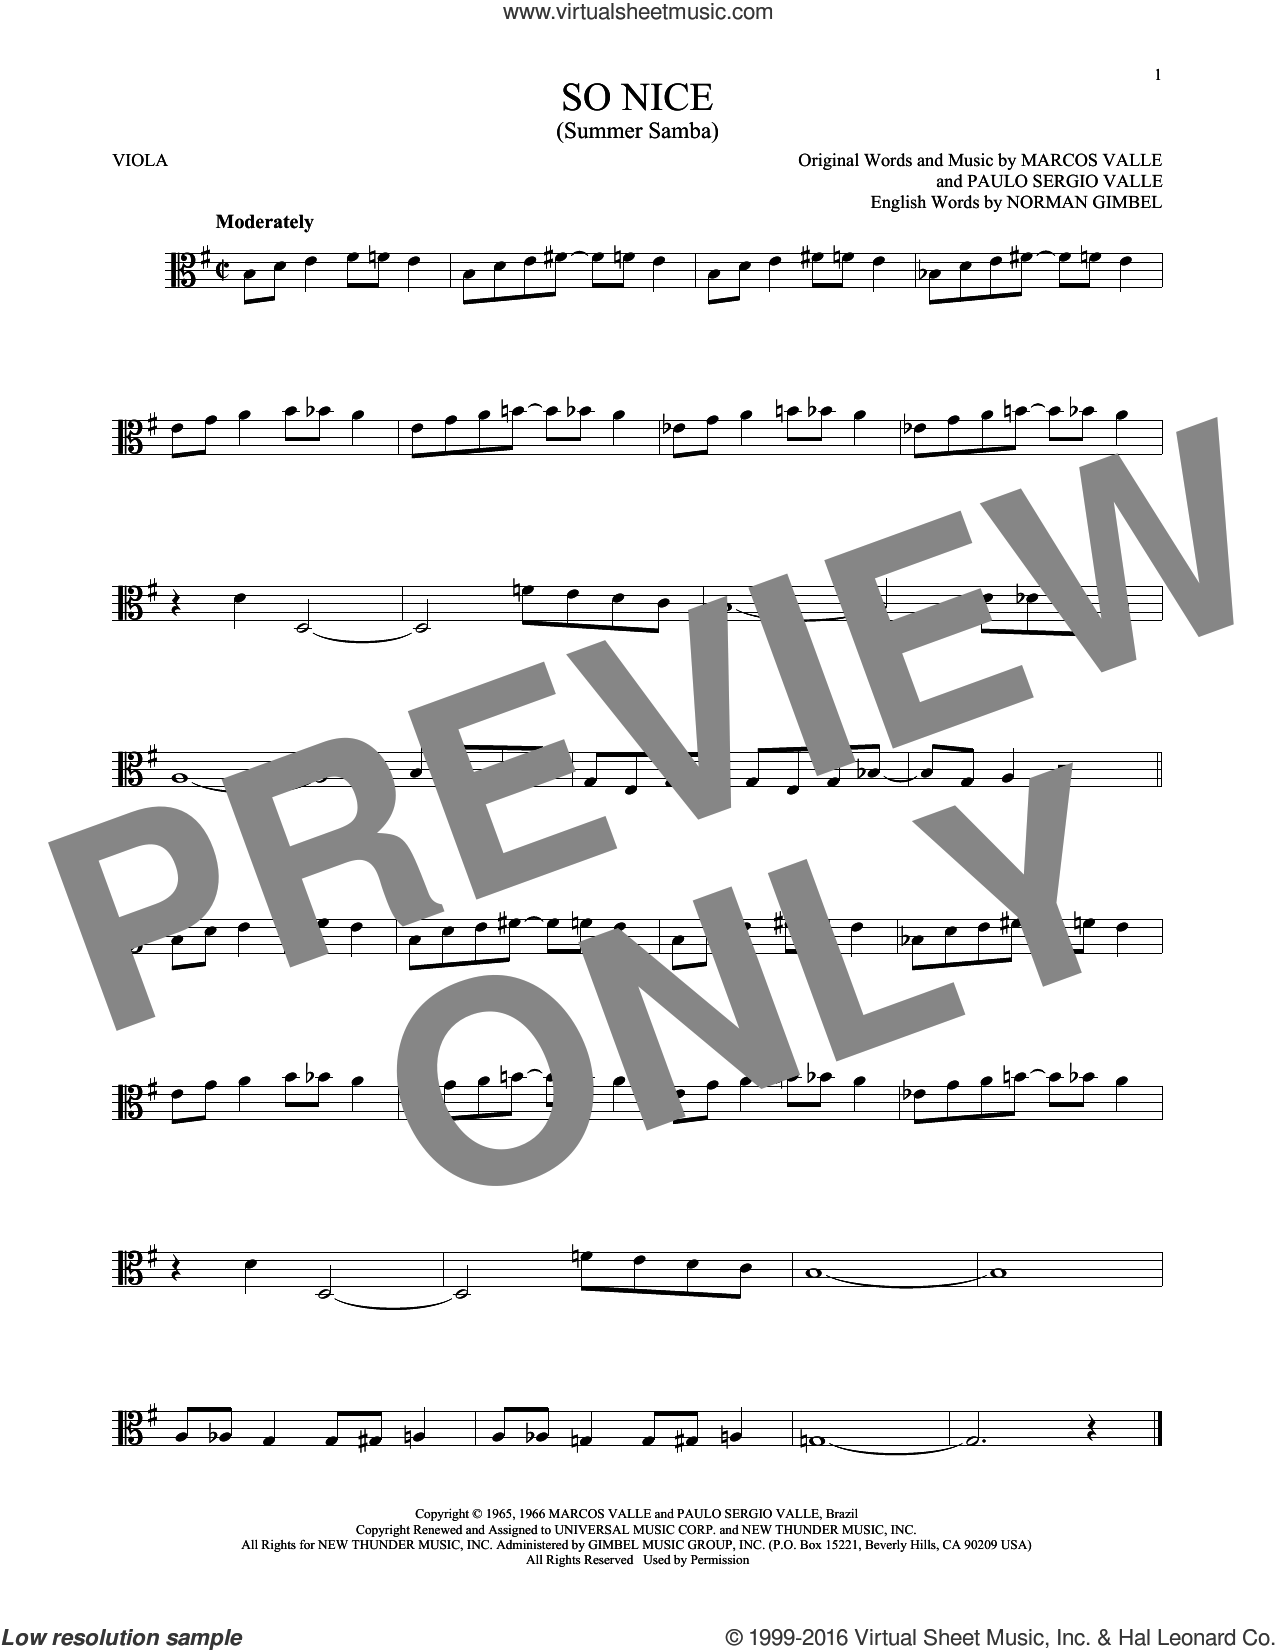 So Nice (Summer Samba) sheet music for viola solo by Paulo Sergio Valle